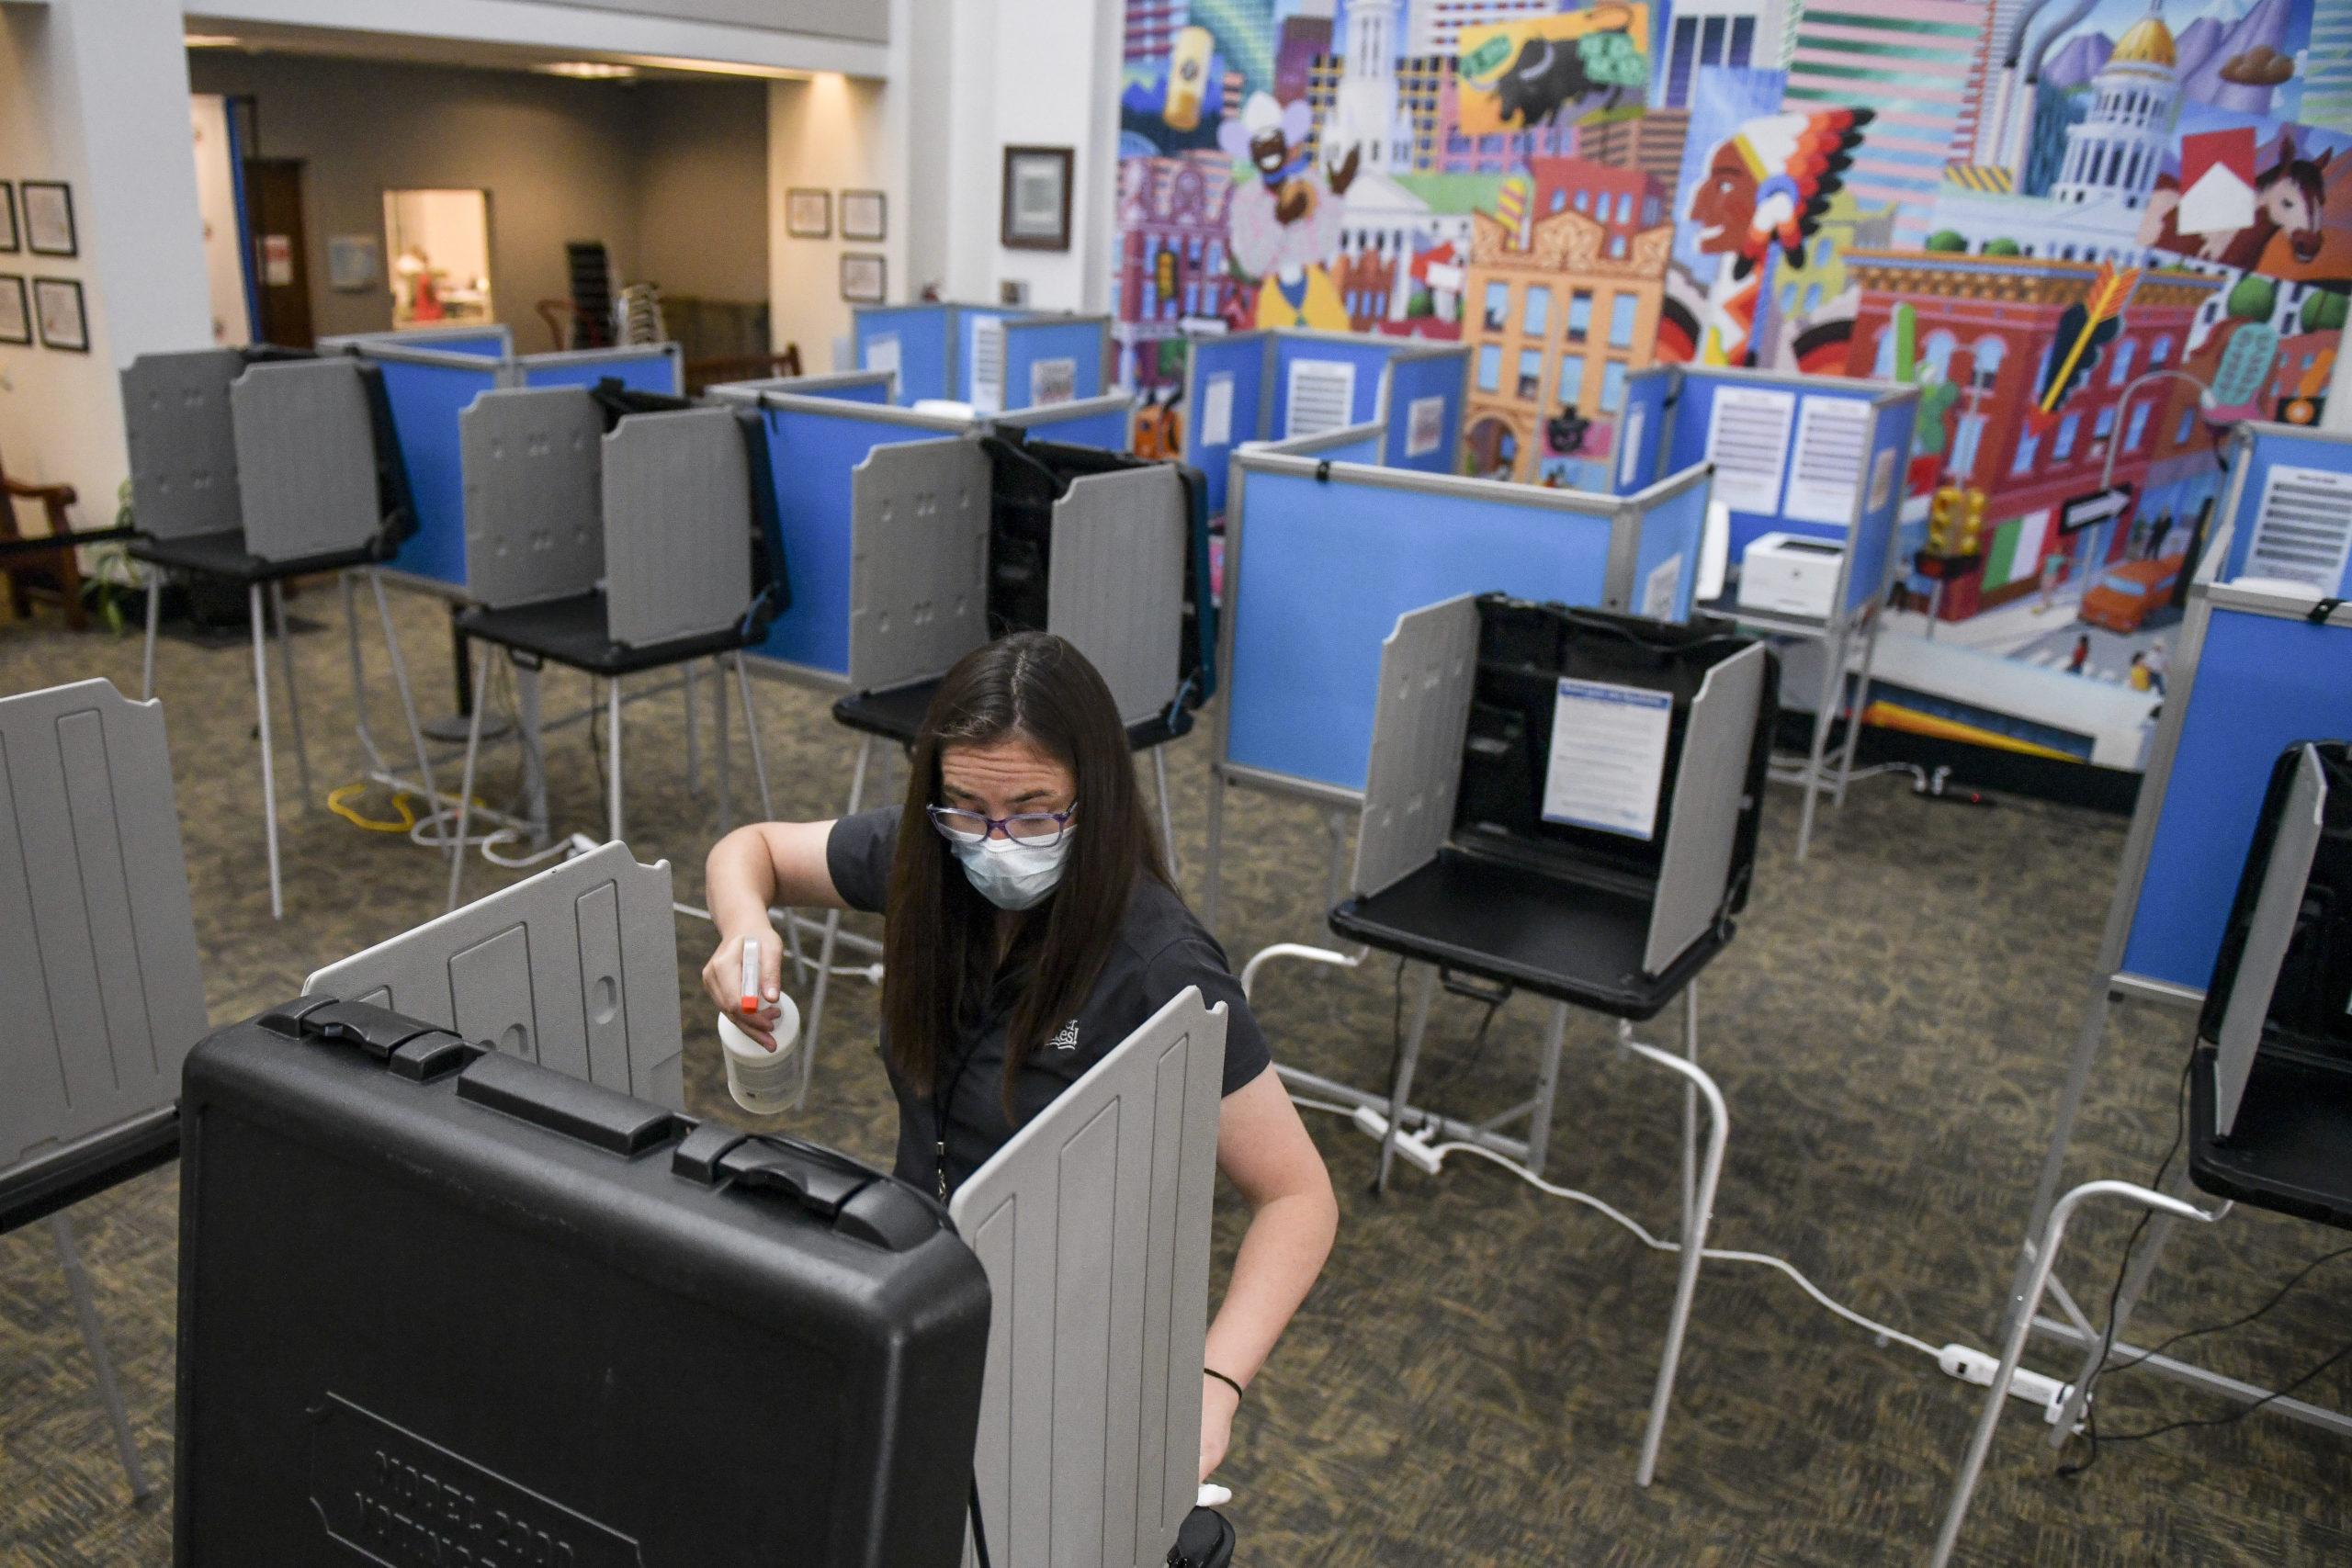 DENVER, CO - JUNE 30: Election judge Miriam Dubinsky sanitizes a voting booth as people vote in the primary election on June 30, 2020 in Denver, Colorado. Voters will decide between former Gov. John Hickenlooper and former Colorado House of Representatives Speaker Andrew Romanoff to face off in the November U.S. Senate race against Sen. Cory Gardner. (Photo by Michael Ciaglo/Getty Images)